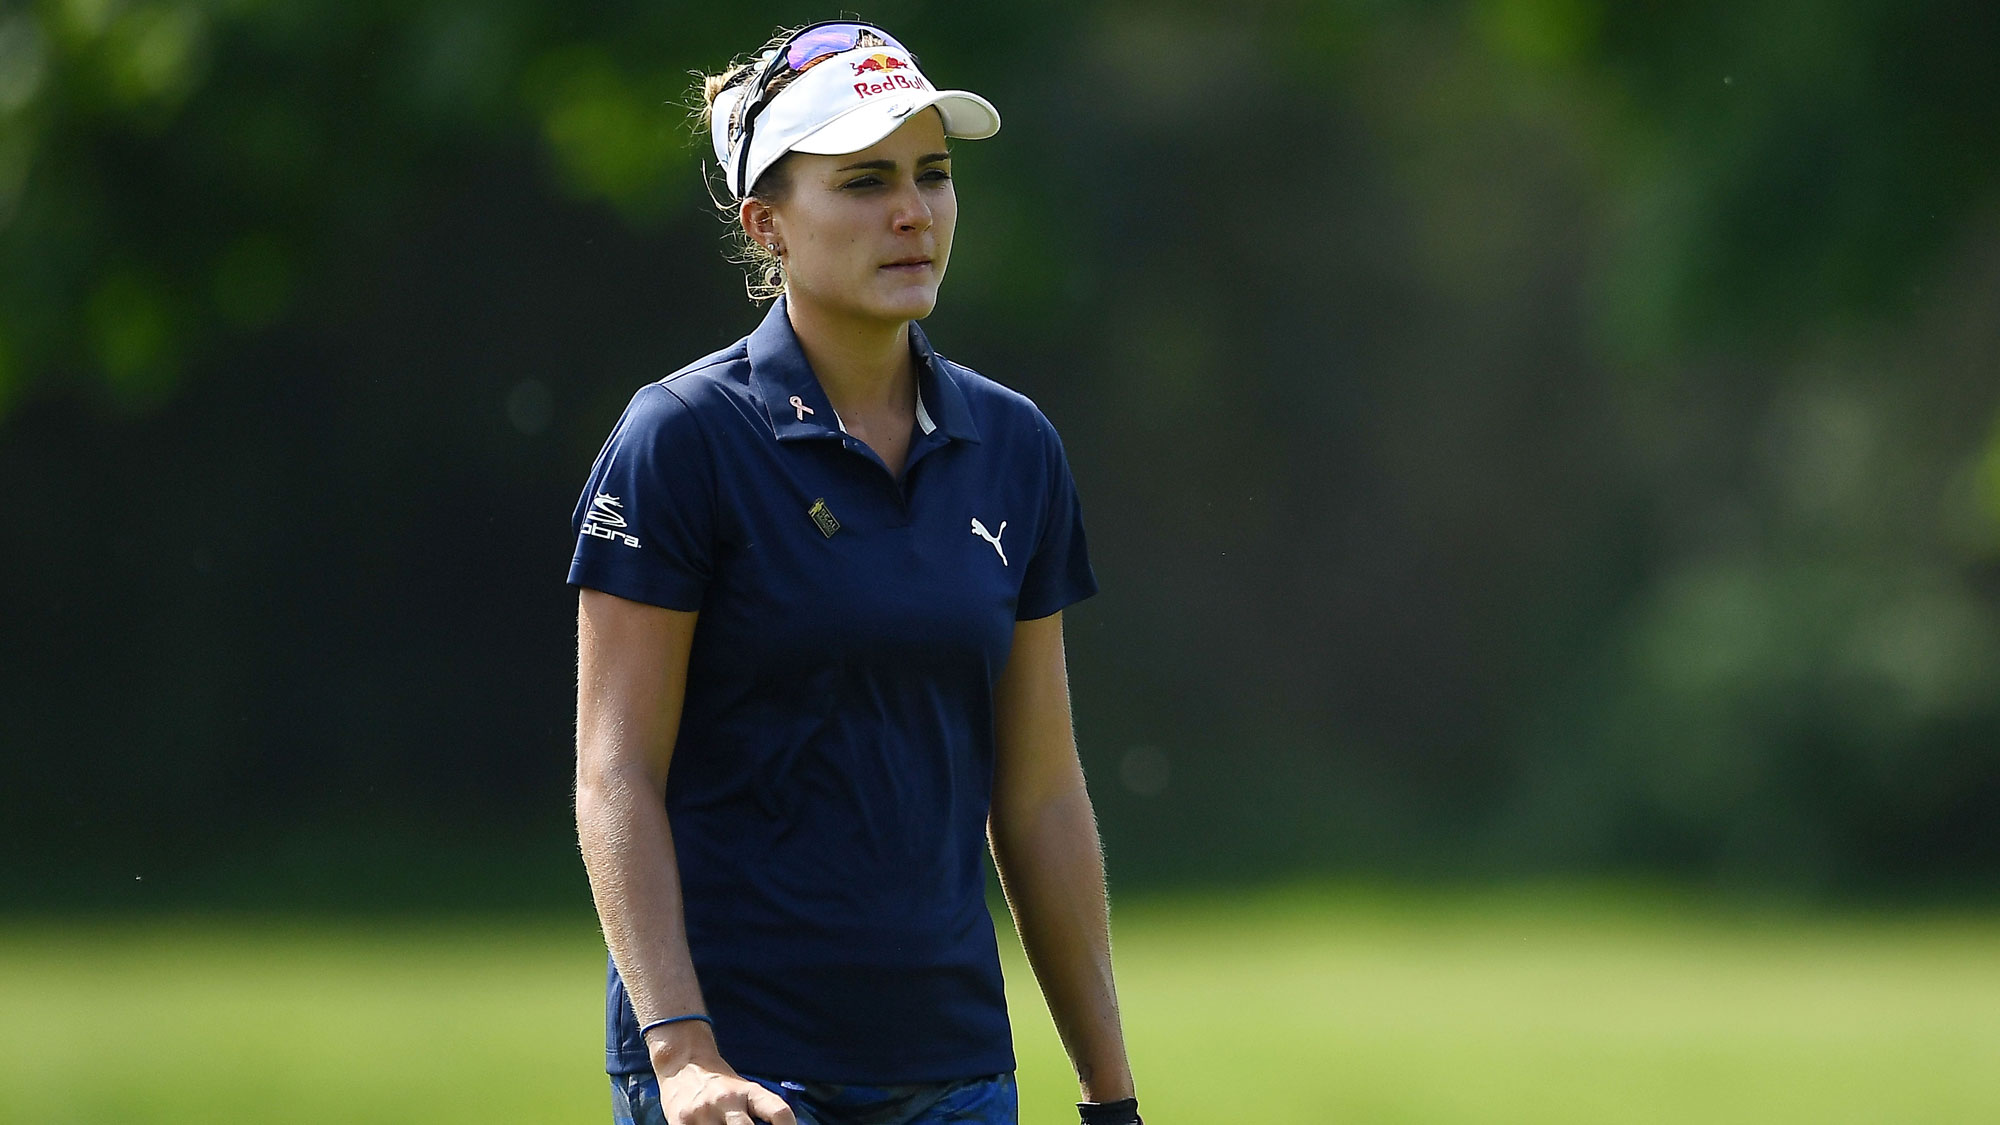 Lexi Thompson Walks Down the Fairway